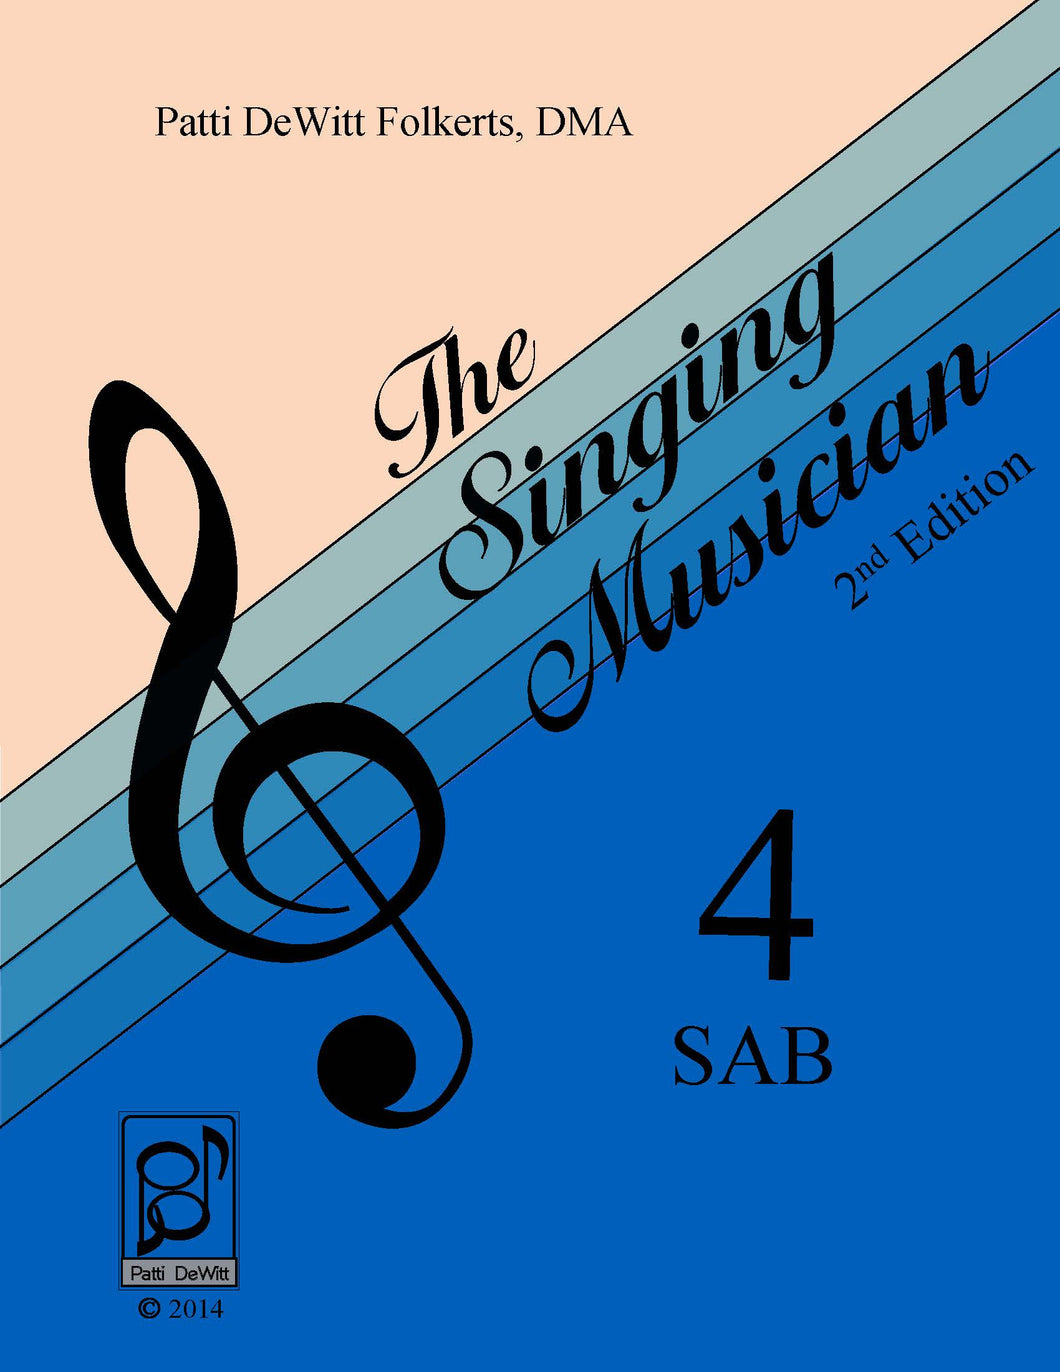 The Singing Musician—Level 4: The Choral Virtuoso SAB Teachers Edition